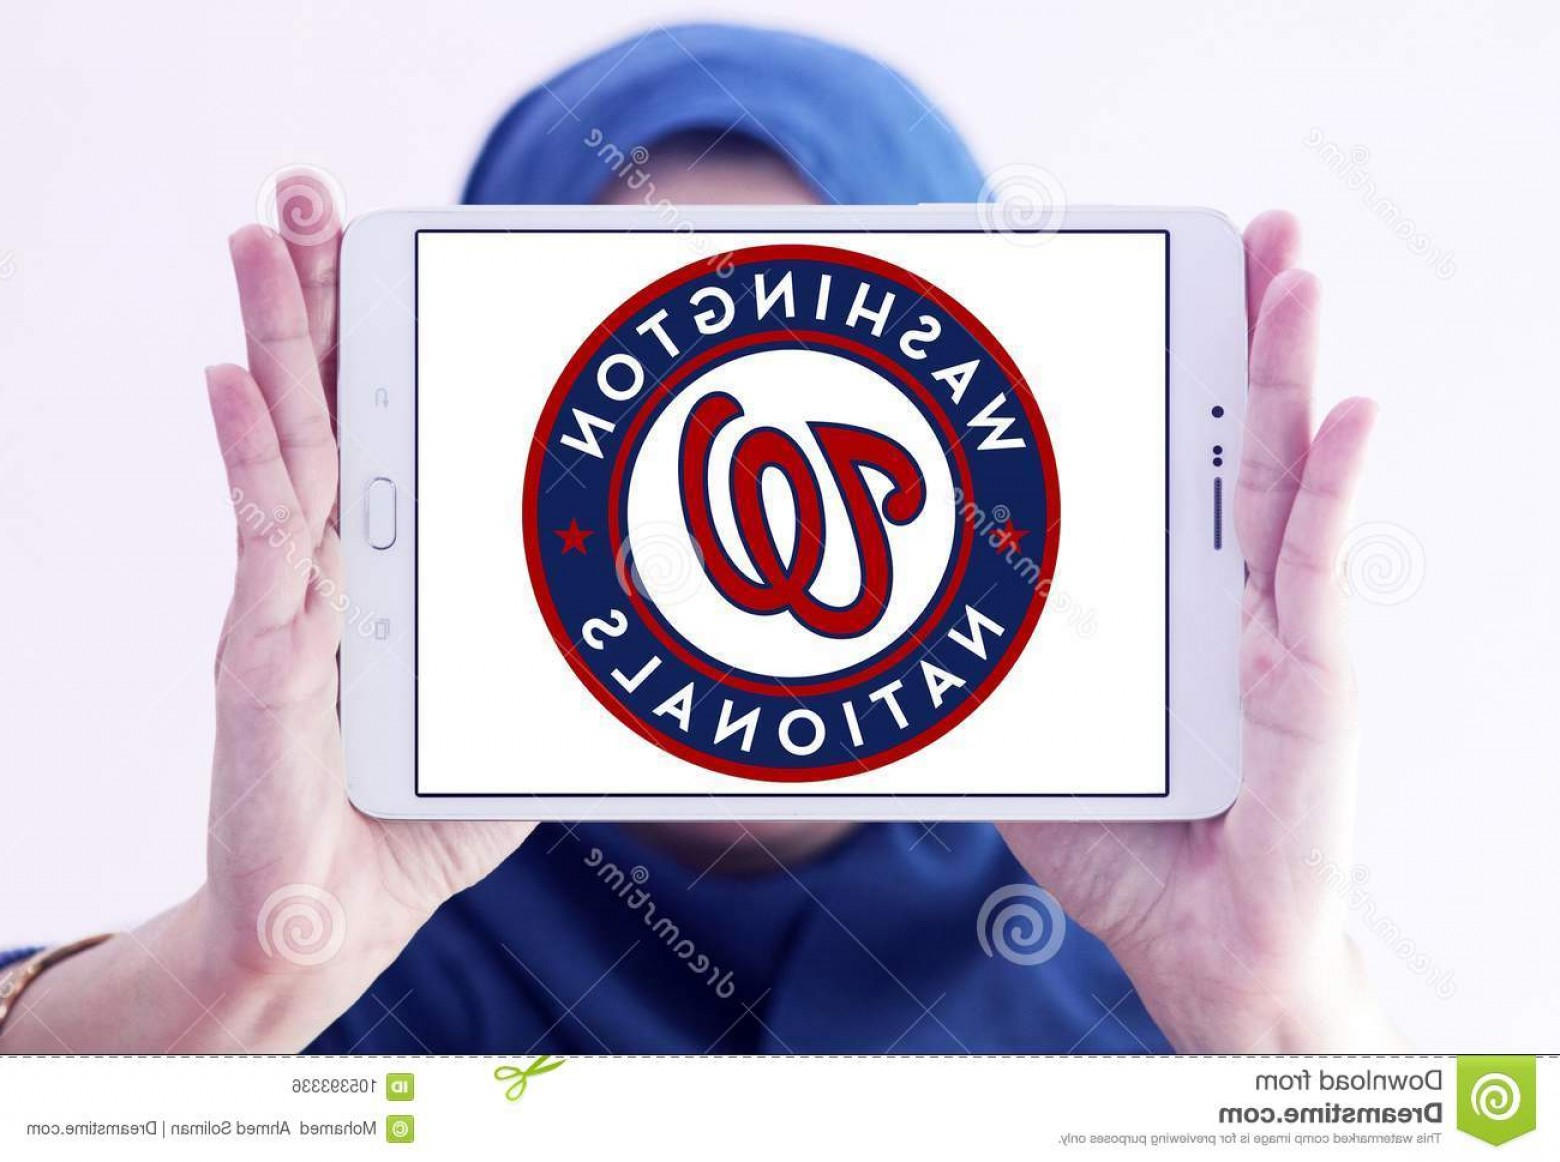 Mets Logo Vector: Logo Washington Nationals Baseball Team Samsung Tablet Holded Arab Muslim Woman Professional Mlb Based D C Image